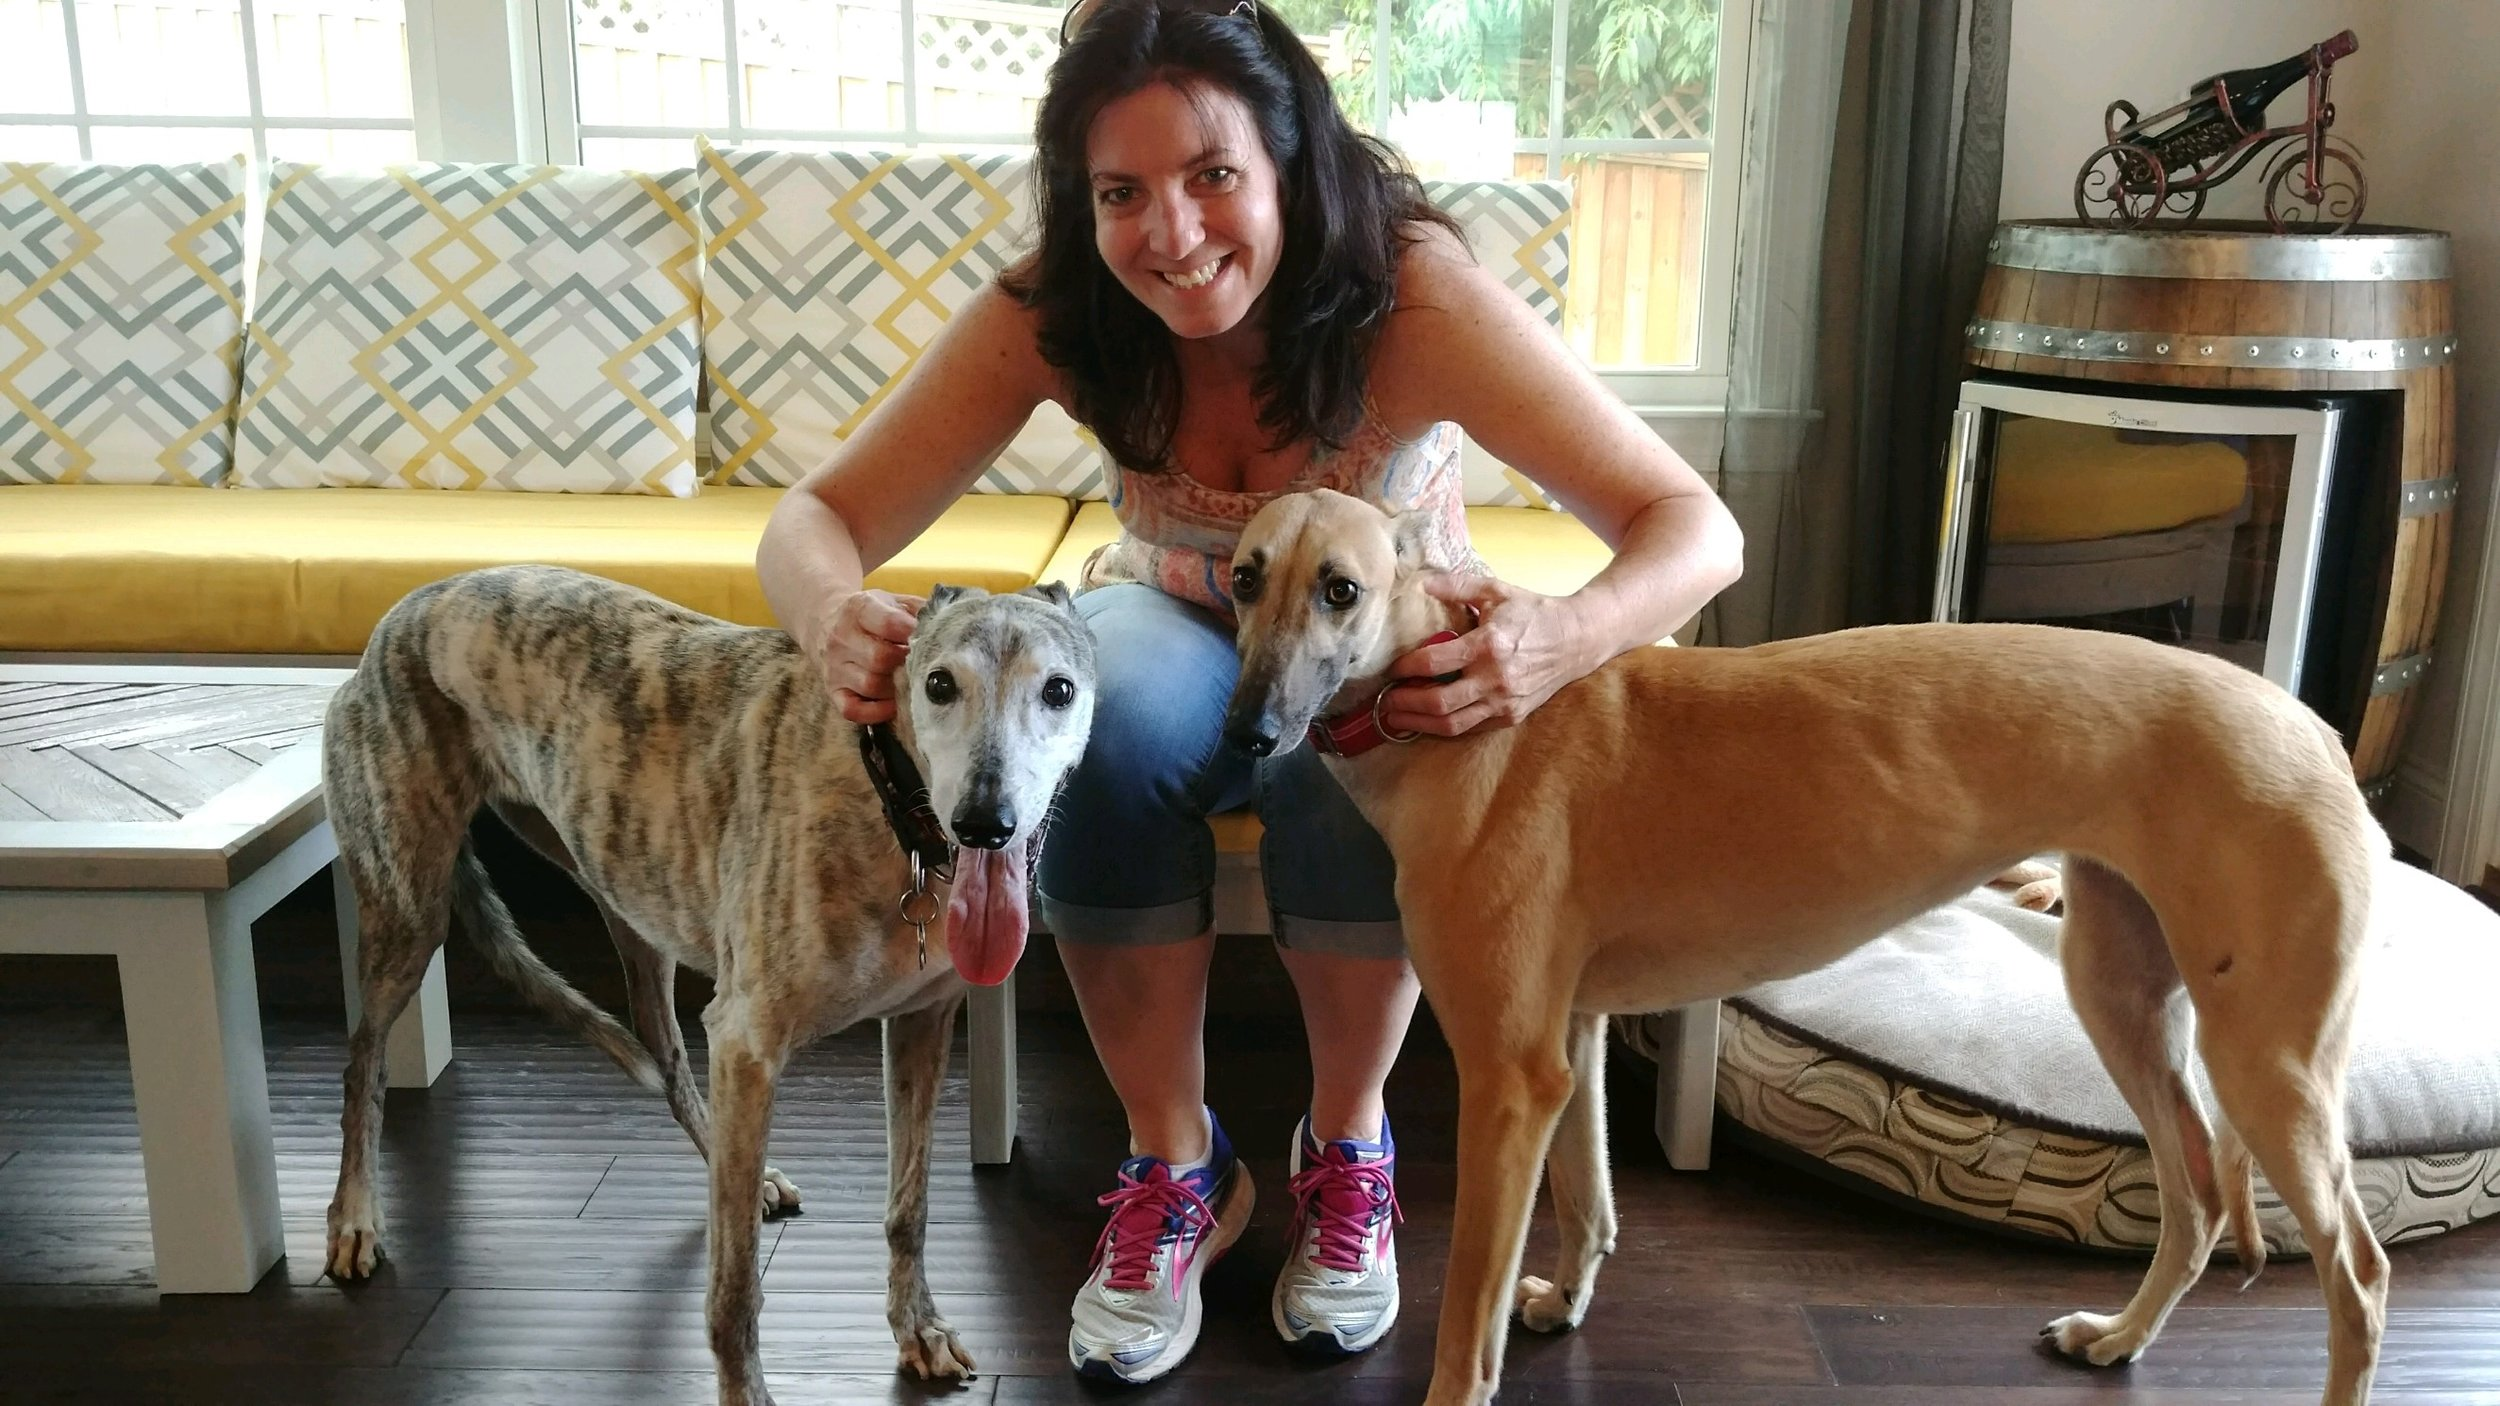 "Christine is not only a long time member but has been a long time board member for BRGA. She is an amazing ambassador for our wonderful Greyhounds.  After recently losing her buddy, Solo, Christine and Gracie knew they had lots more love to give!  They welcomed Joy into their home. Joy is a sweet, shy, red fawn Grey who immediately loved her new place...she ""Roached"" the first day!!  BRGA is so excited to have Joy in the pack!"